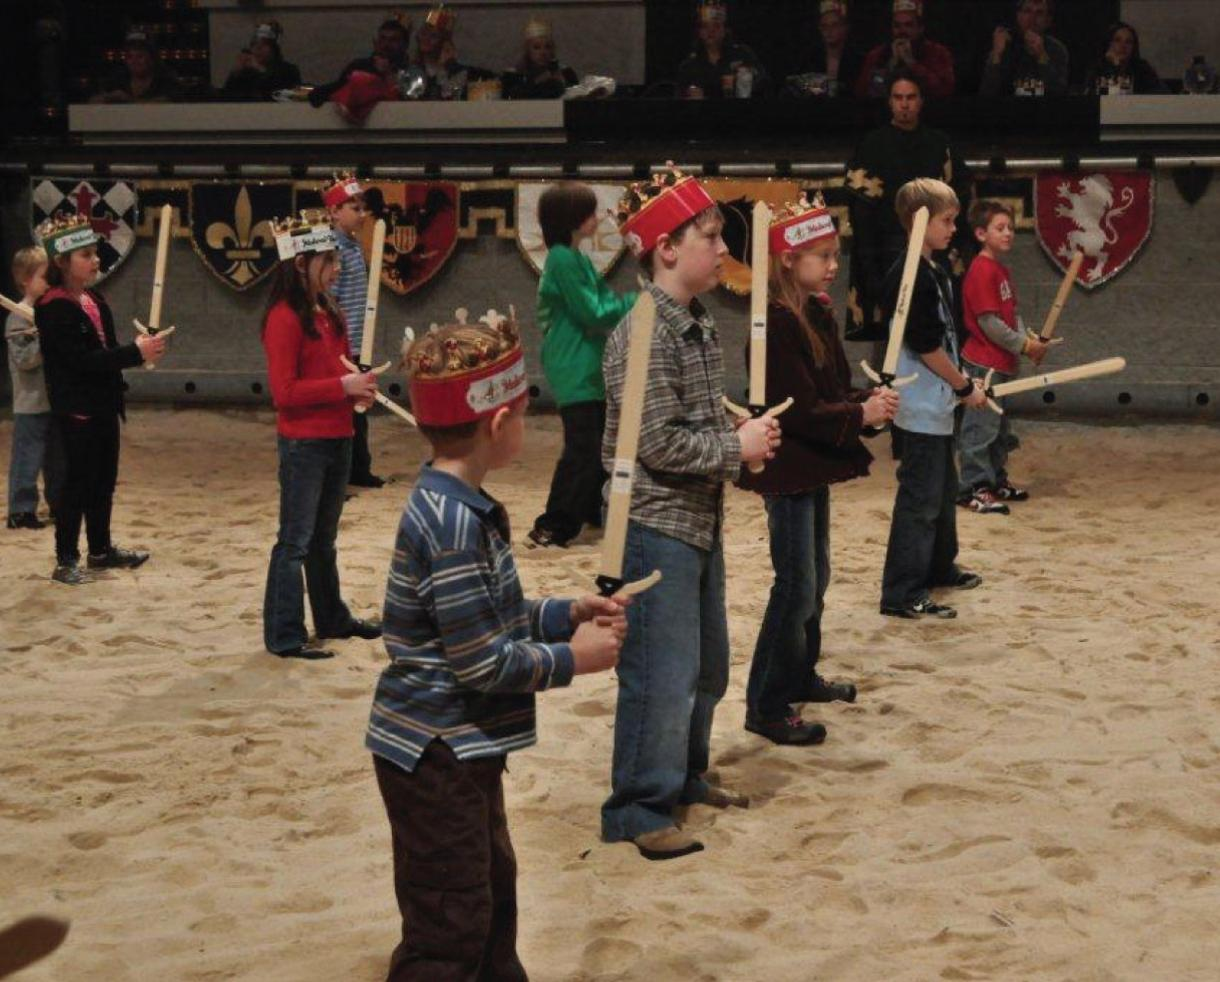 Join Medieval Times for Family New Year's Eve - Lots of FREE Fun! December 31st at 3:30 p.m. in Hanover, MD